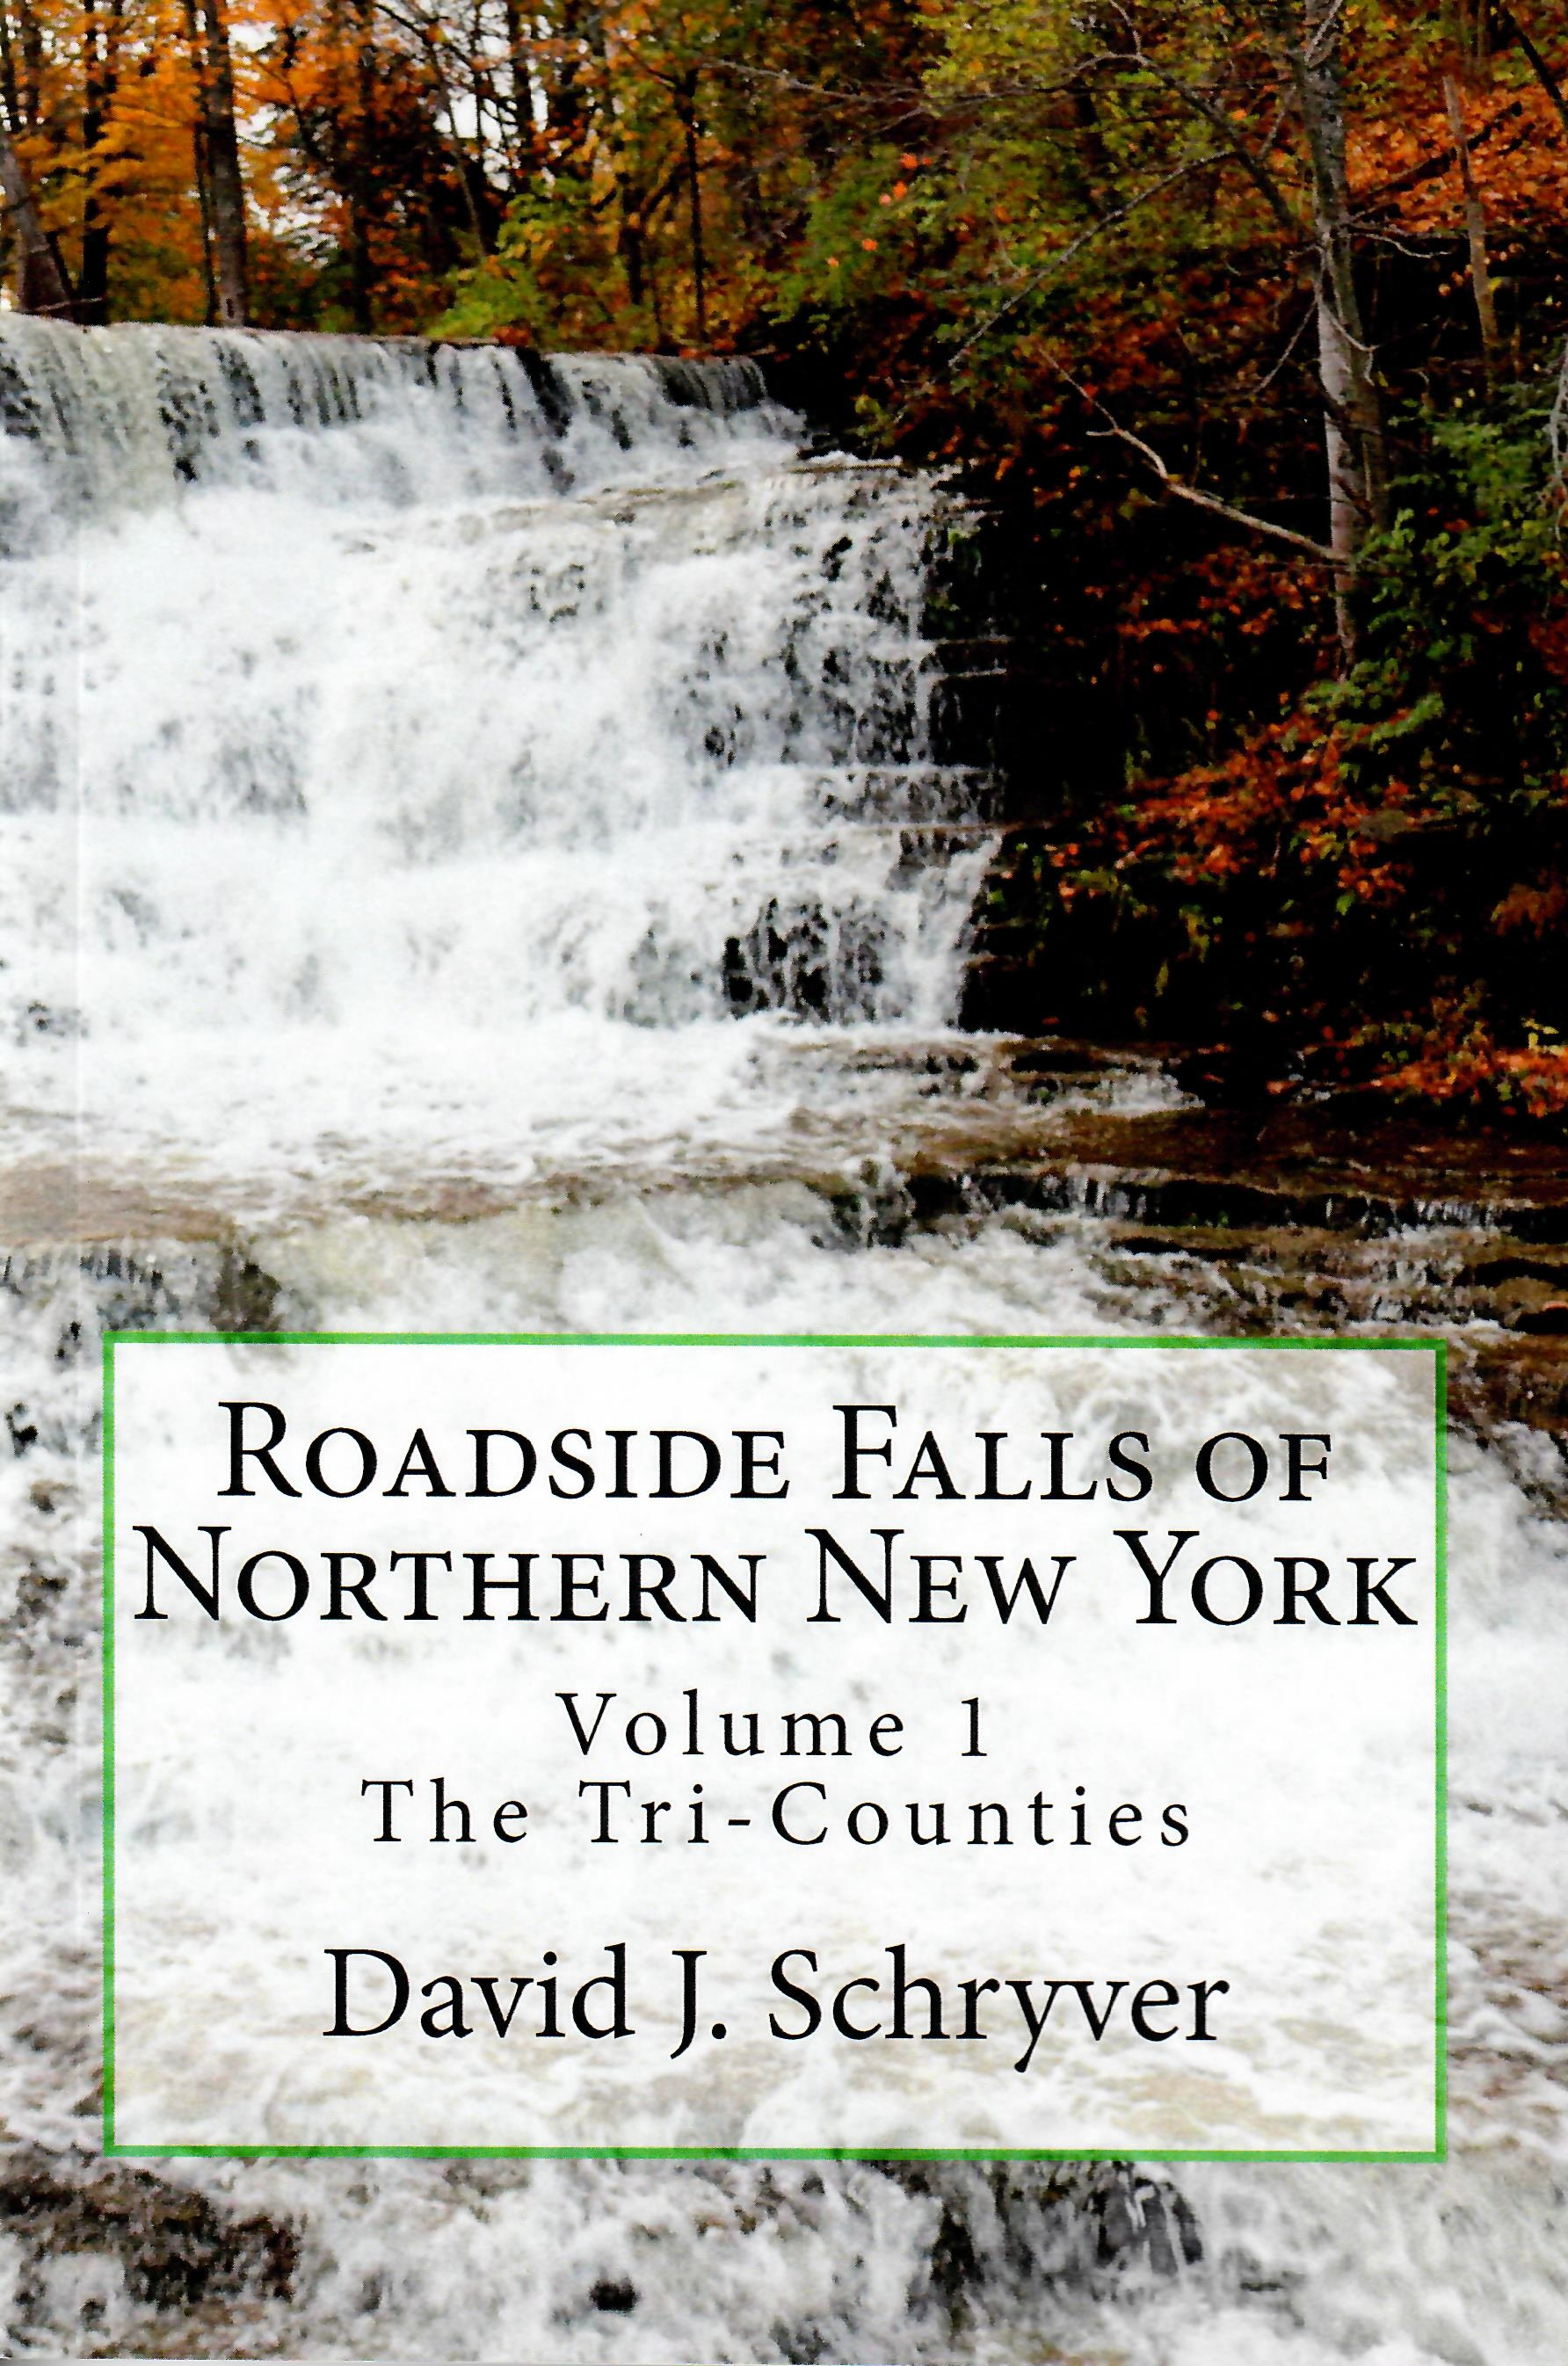 Roadside Falls of NNY Volume 1